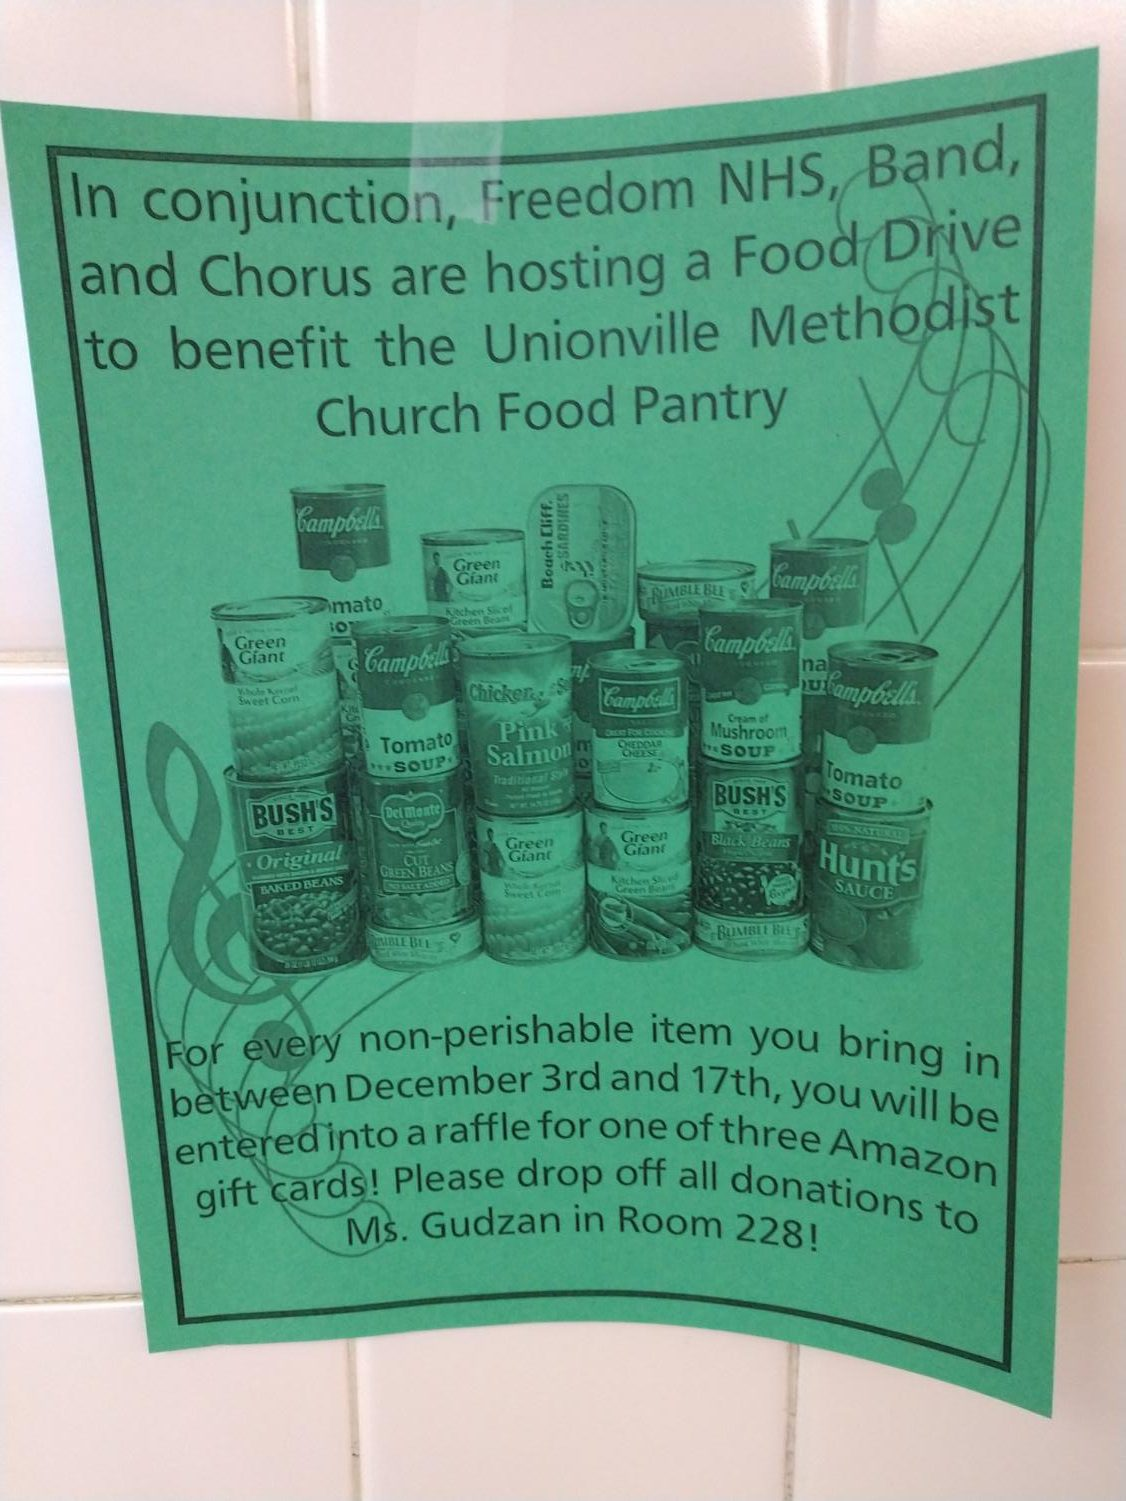 A flyer for the NHS food drive found in one of the halls of the highschool